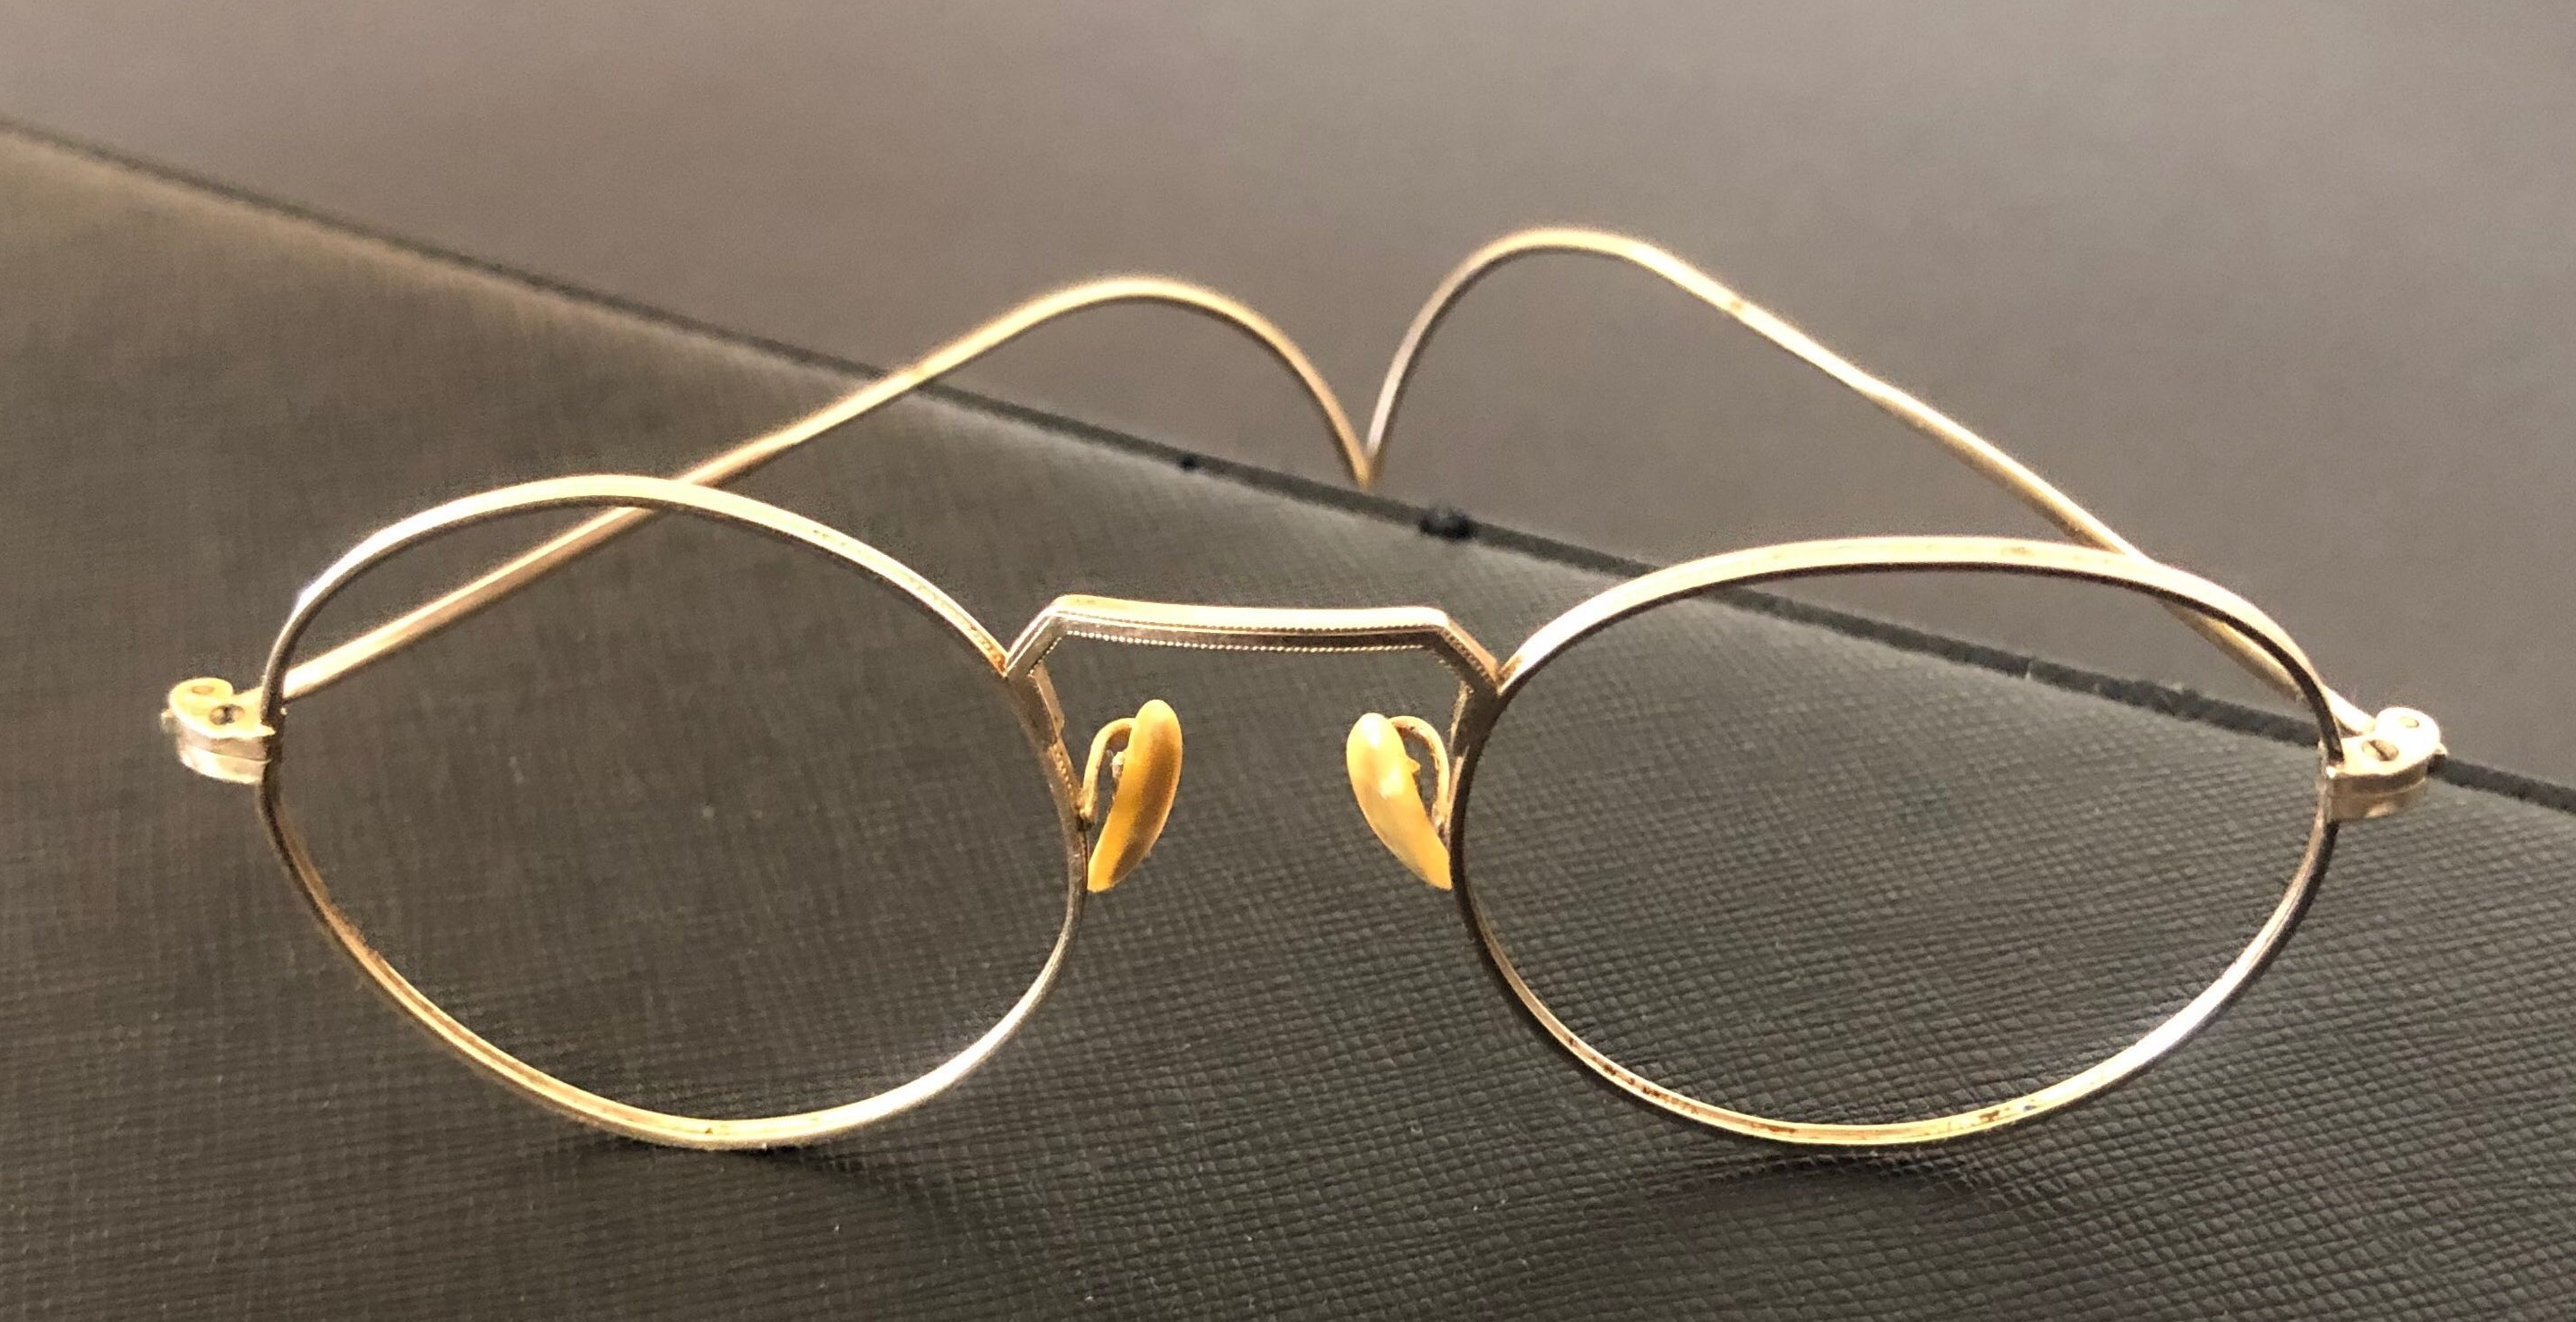 John Lennon's glasses